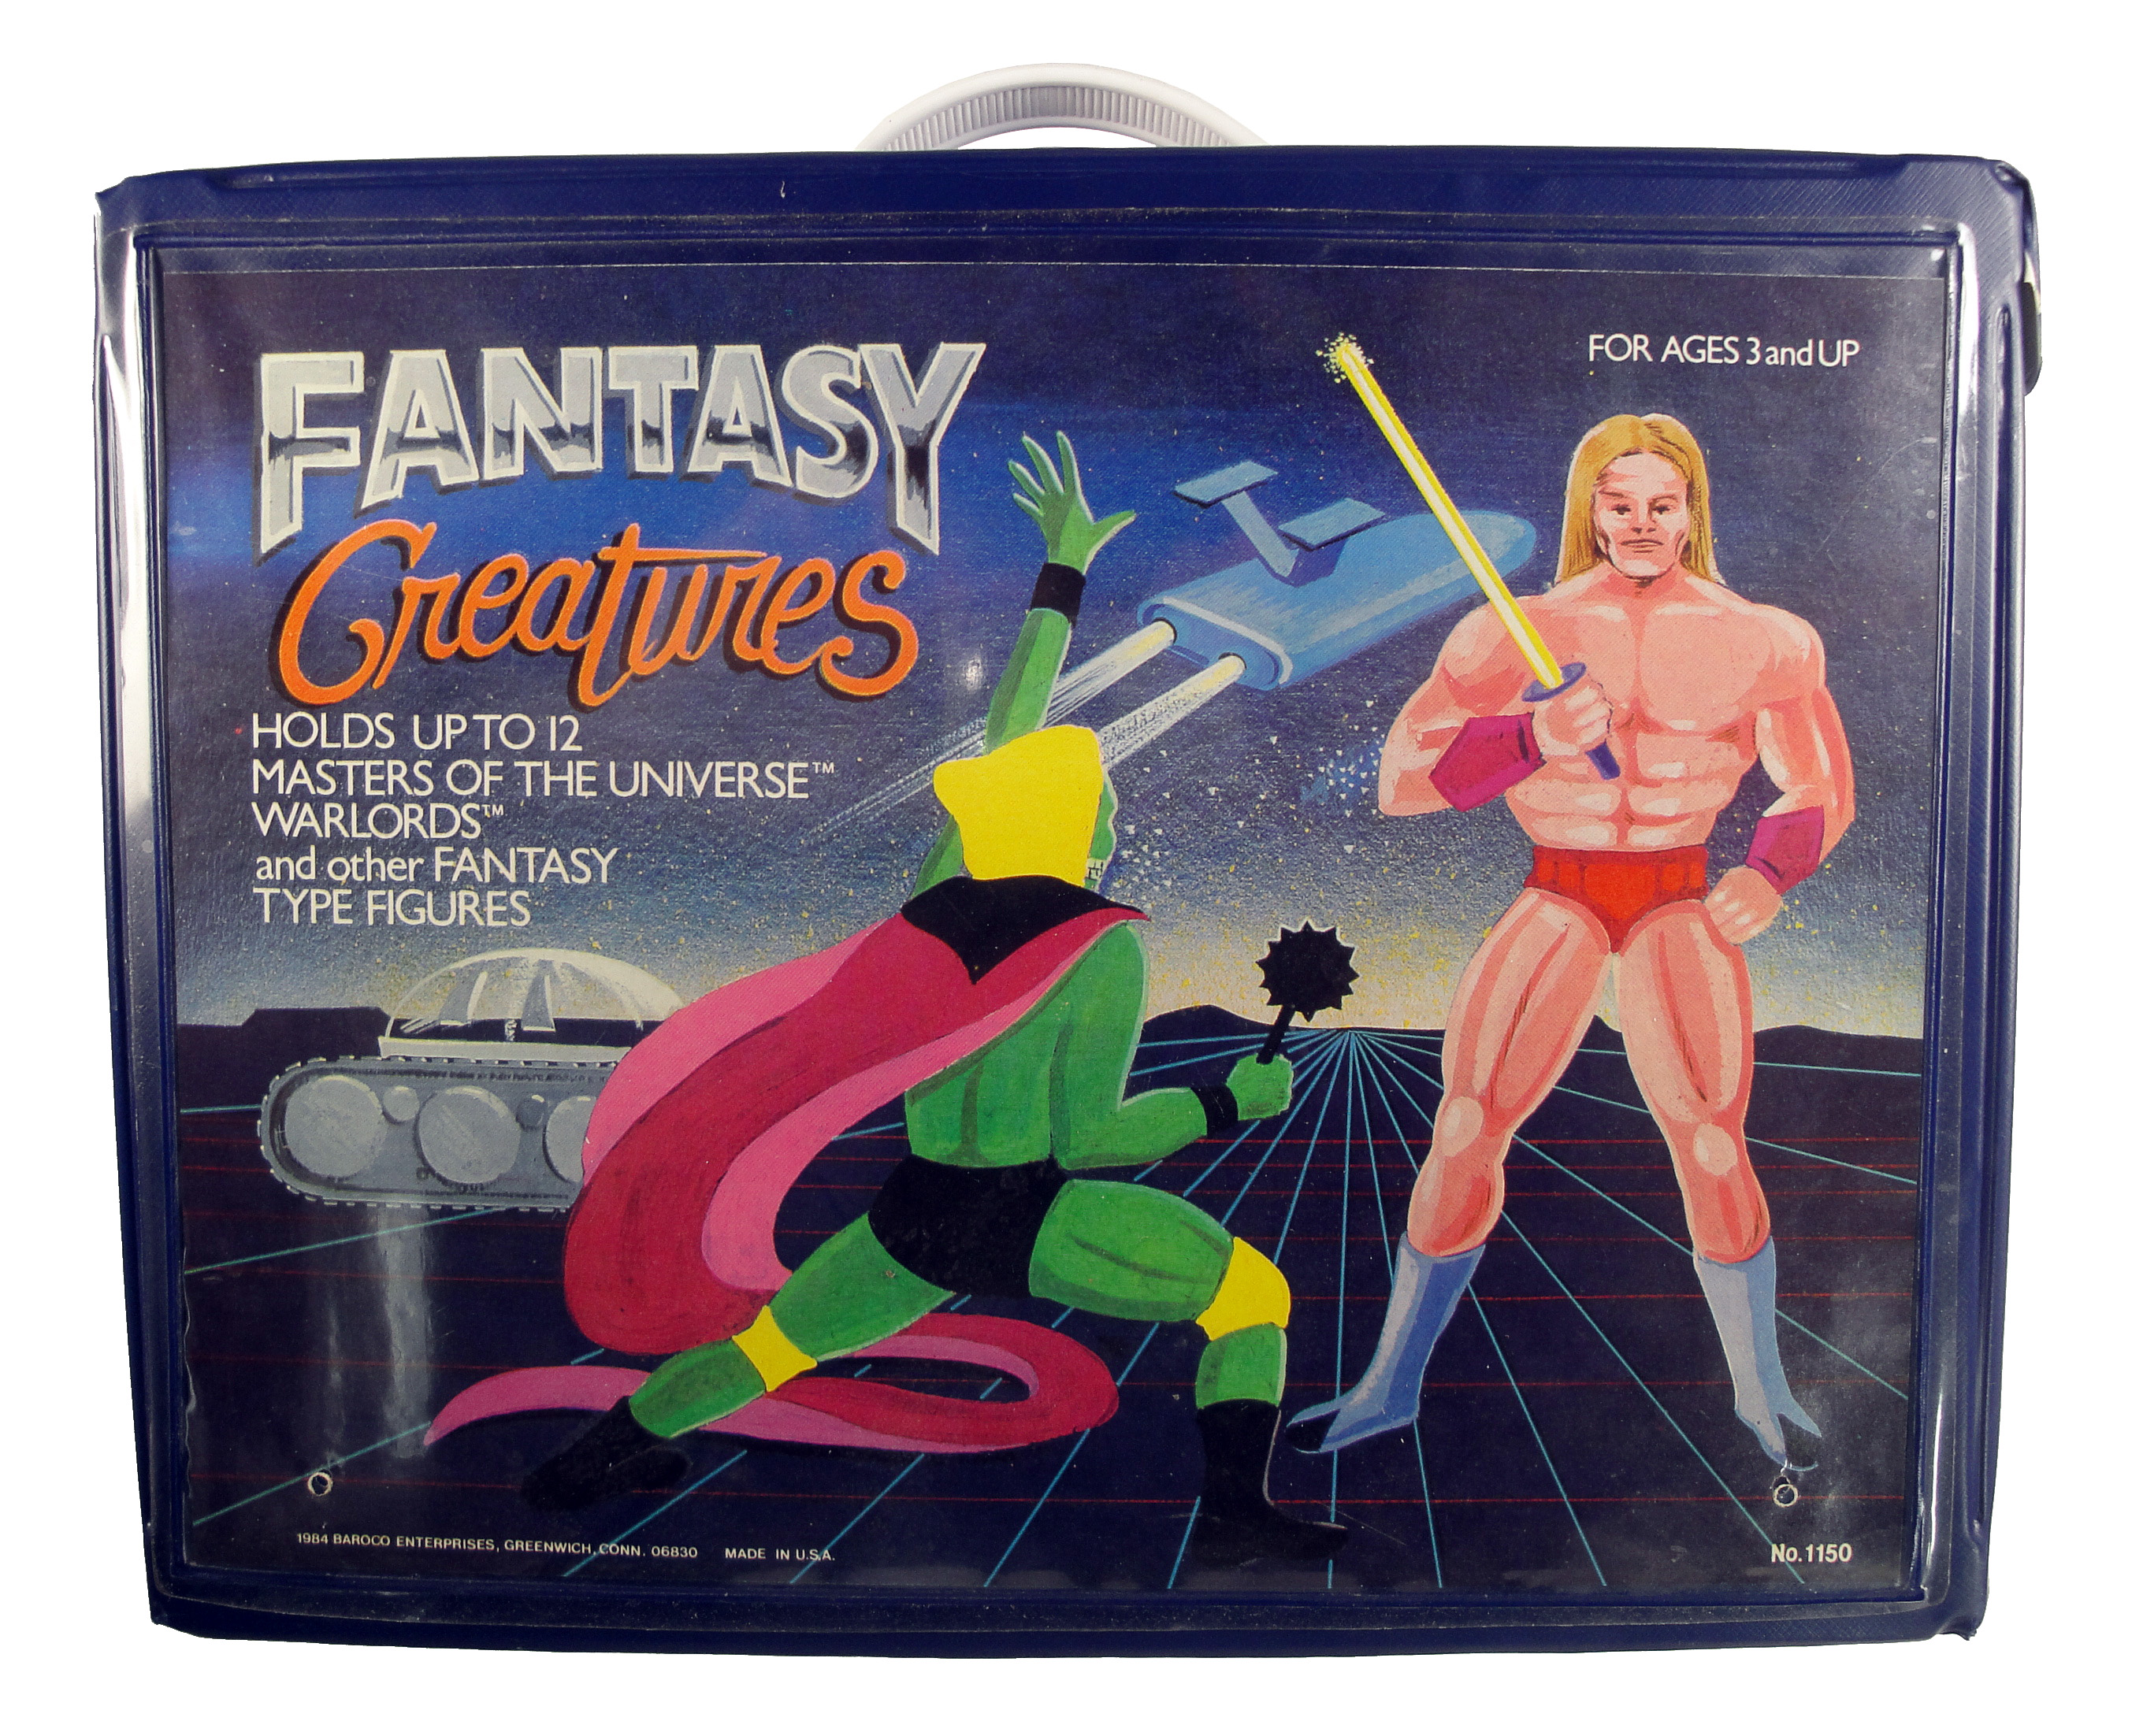 1984 Fantasy Creatures Action Figure Carrying Case